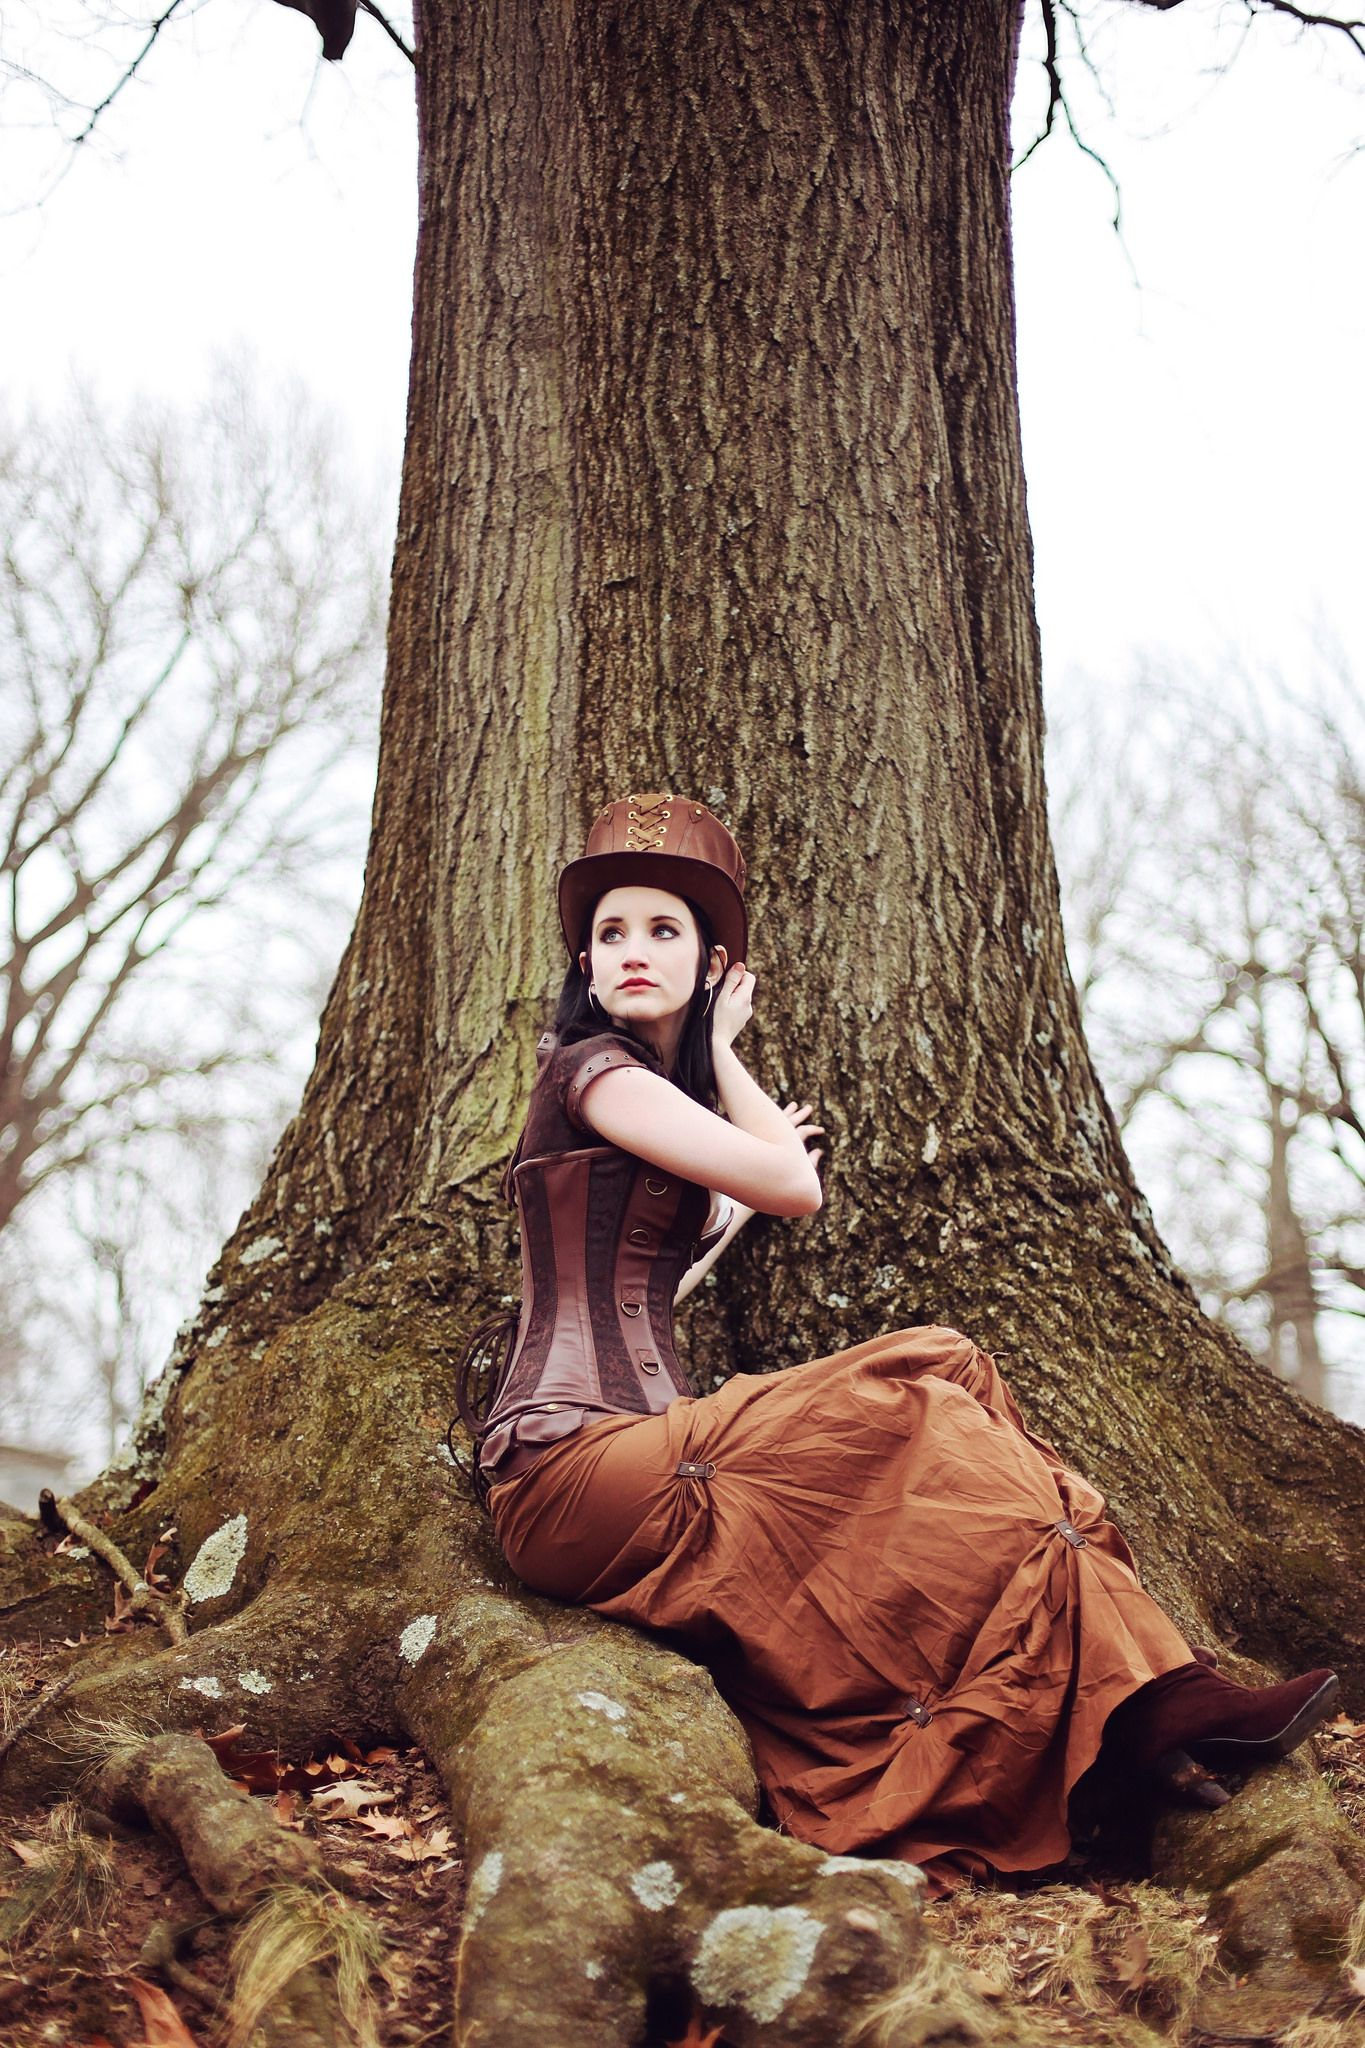 https://flic.kr/p/mkcNvz | Steampunk | I thought several of her photos started looking pretty magical, and then we found this tree with ginormous roots. Amen for that.  ENJOY!